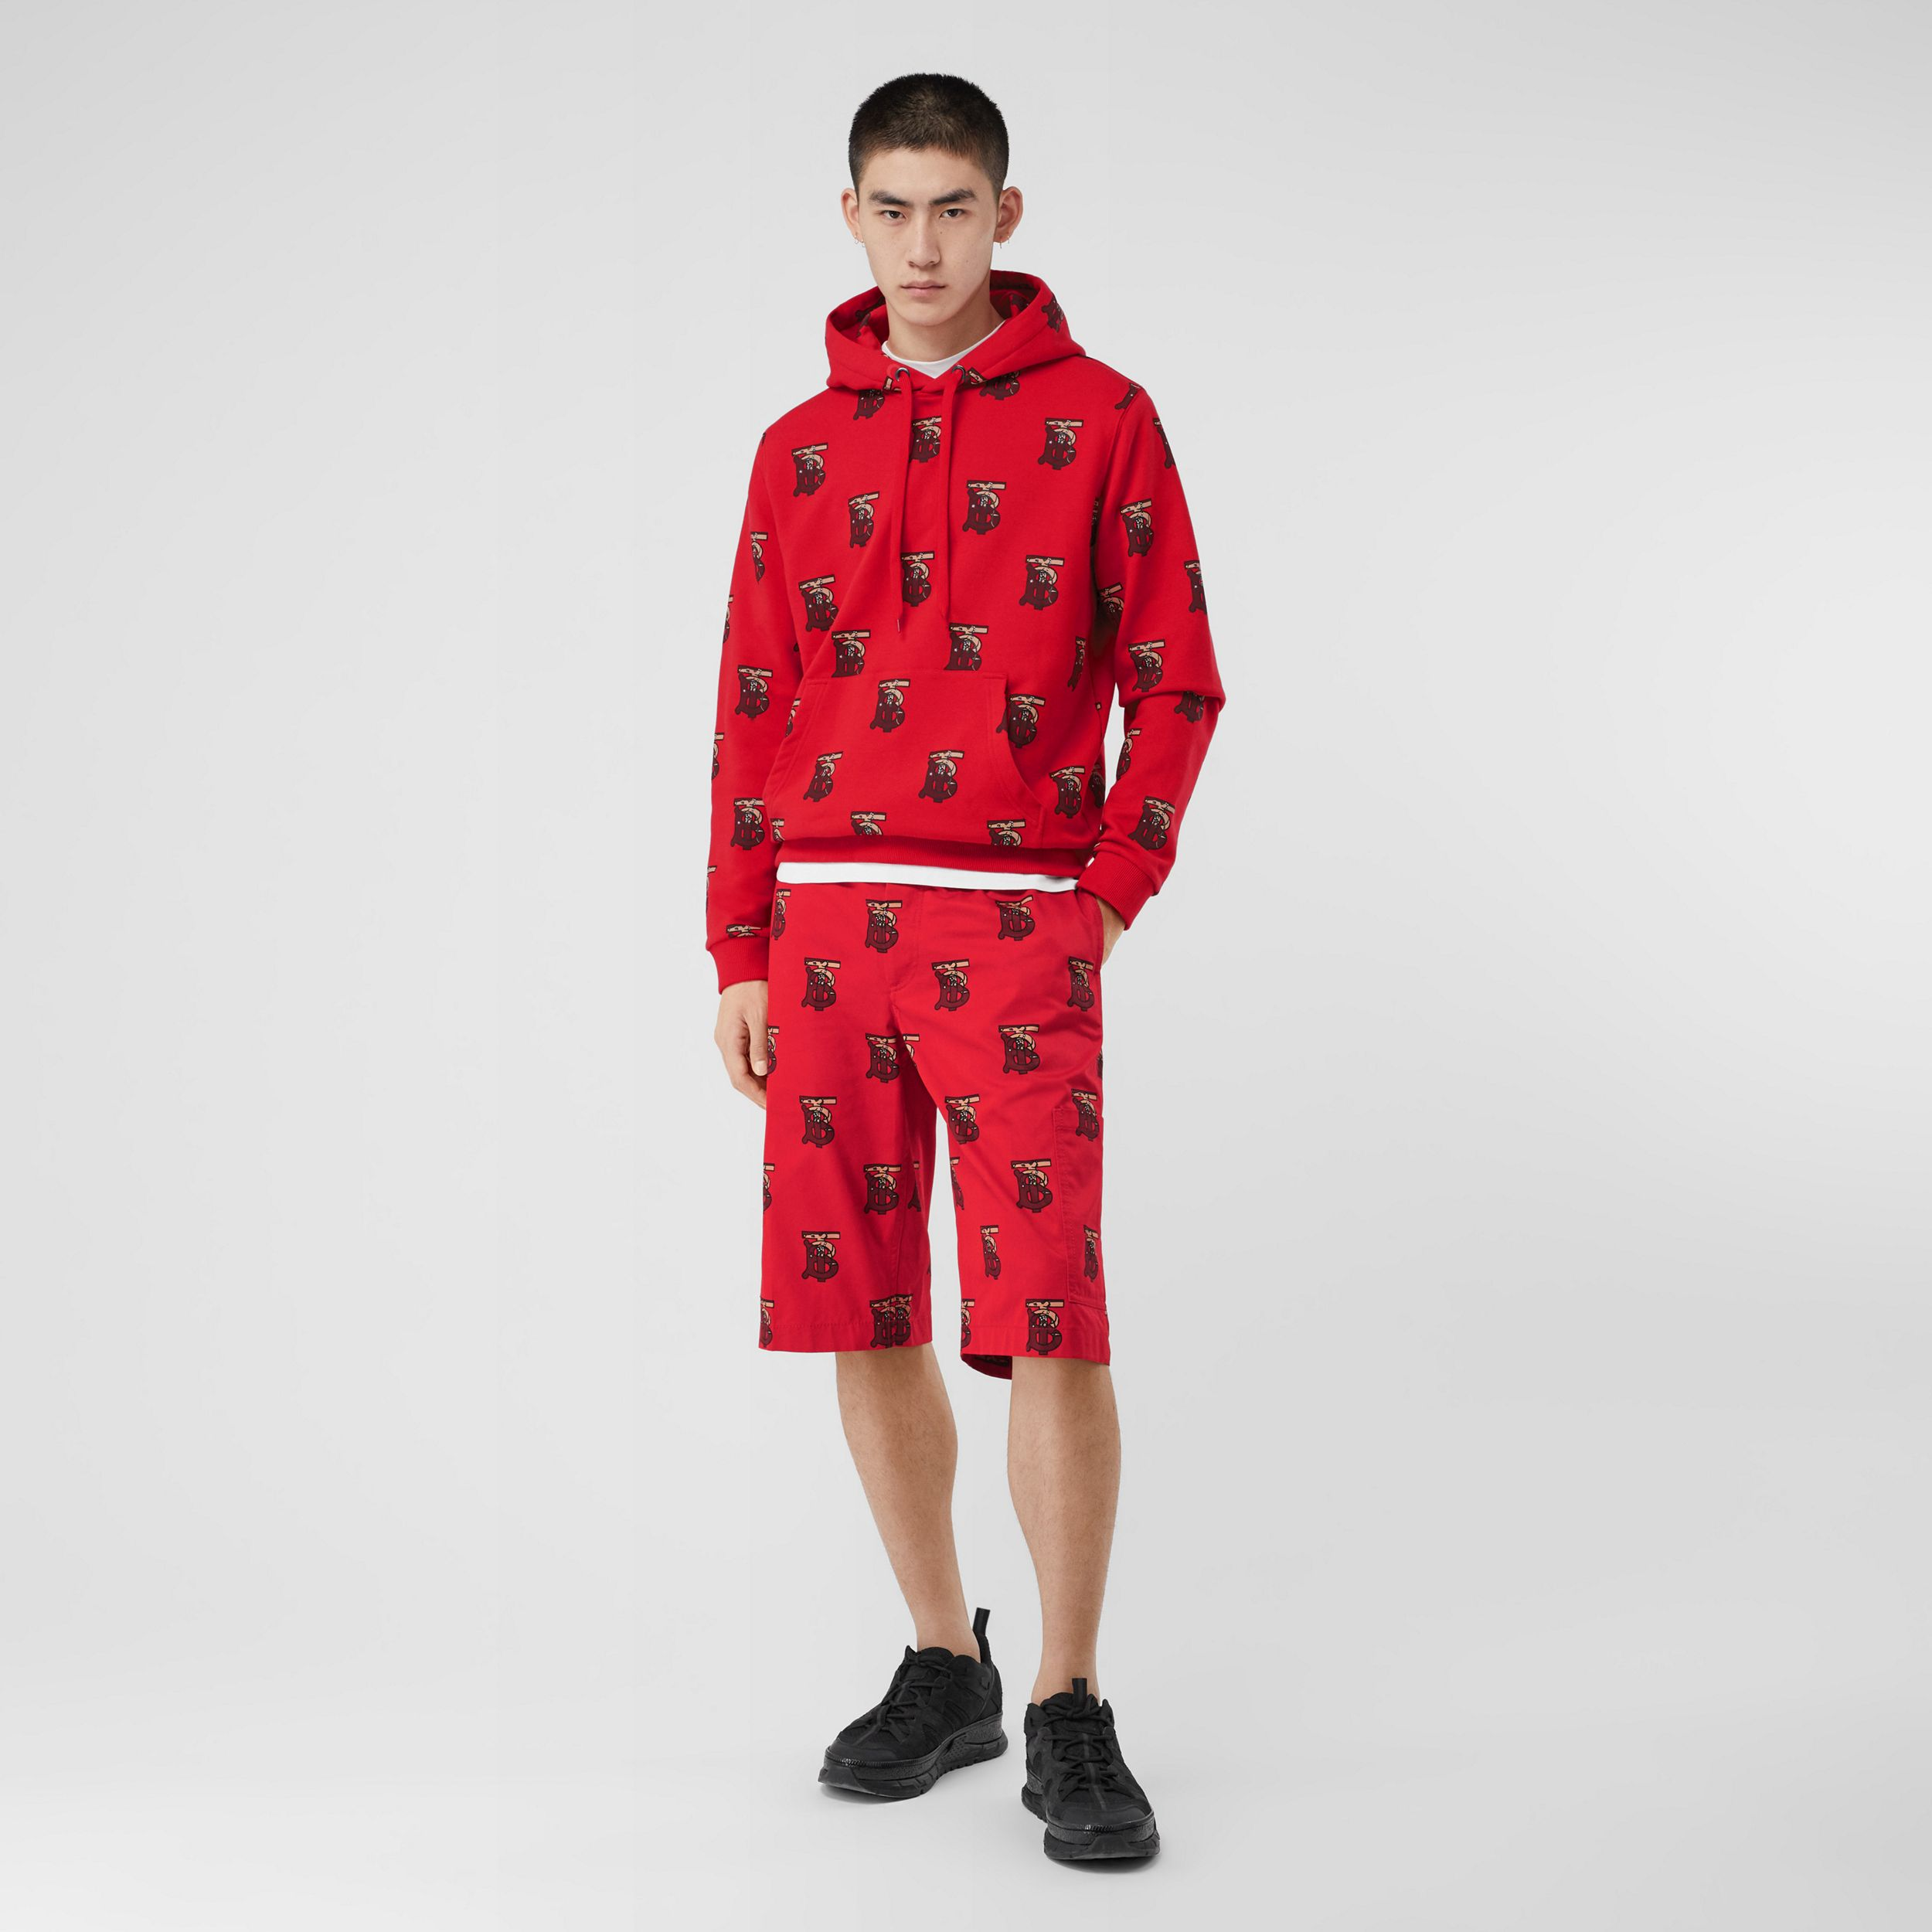 Monogram Motif Cotton Oversized Hoodie in Bright Red - Men | Burberry Canada - 1